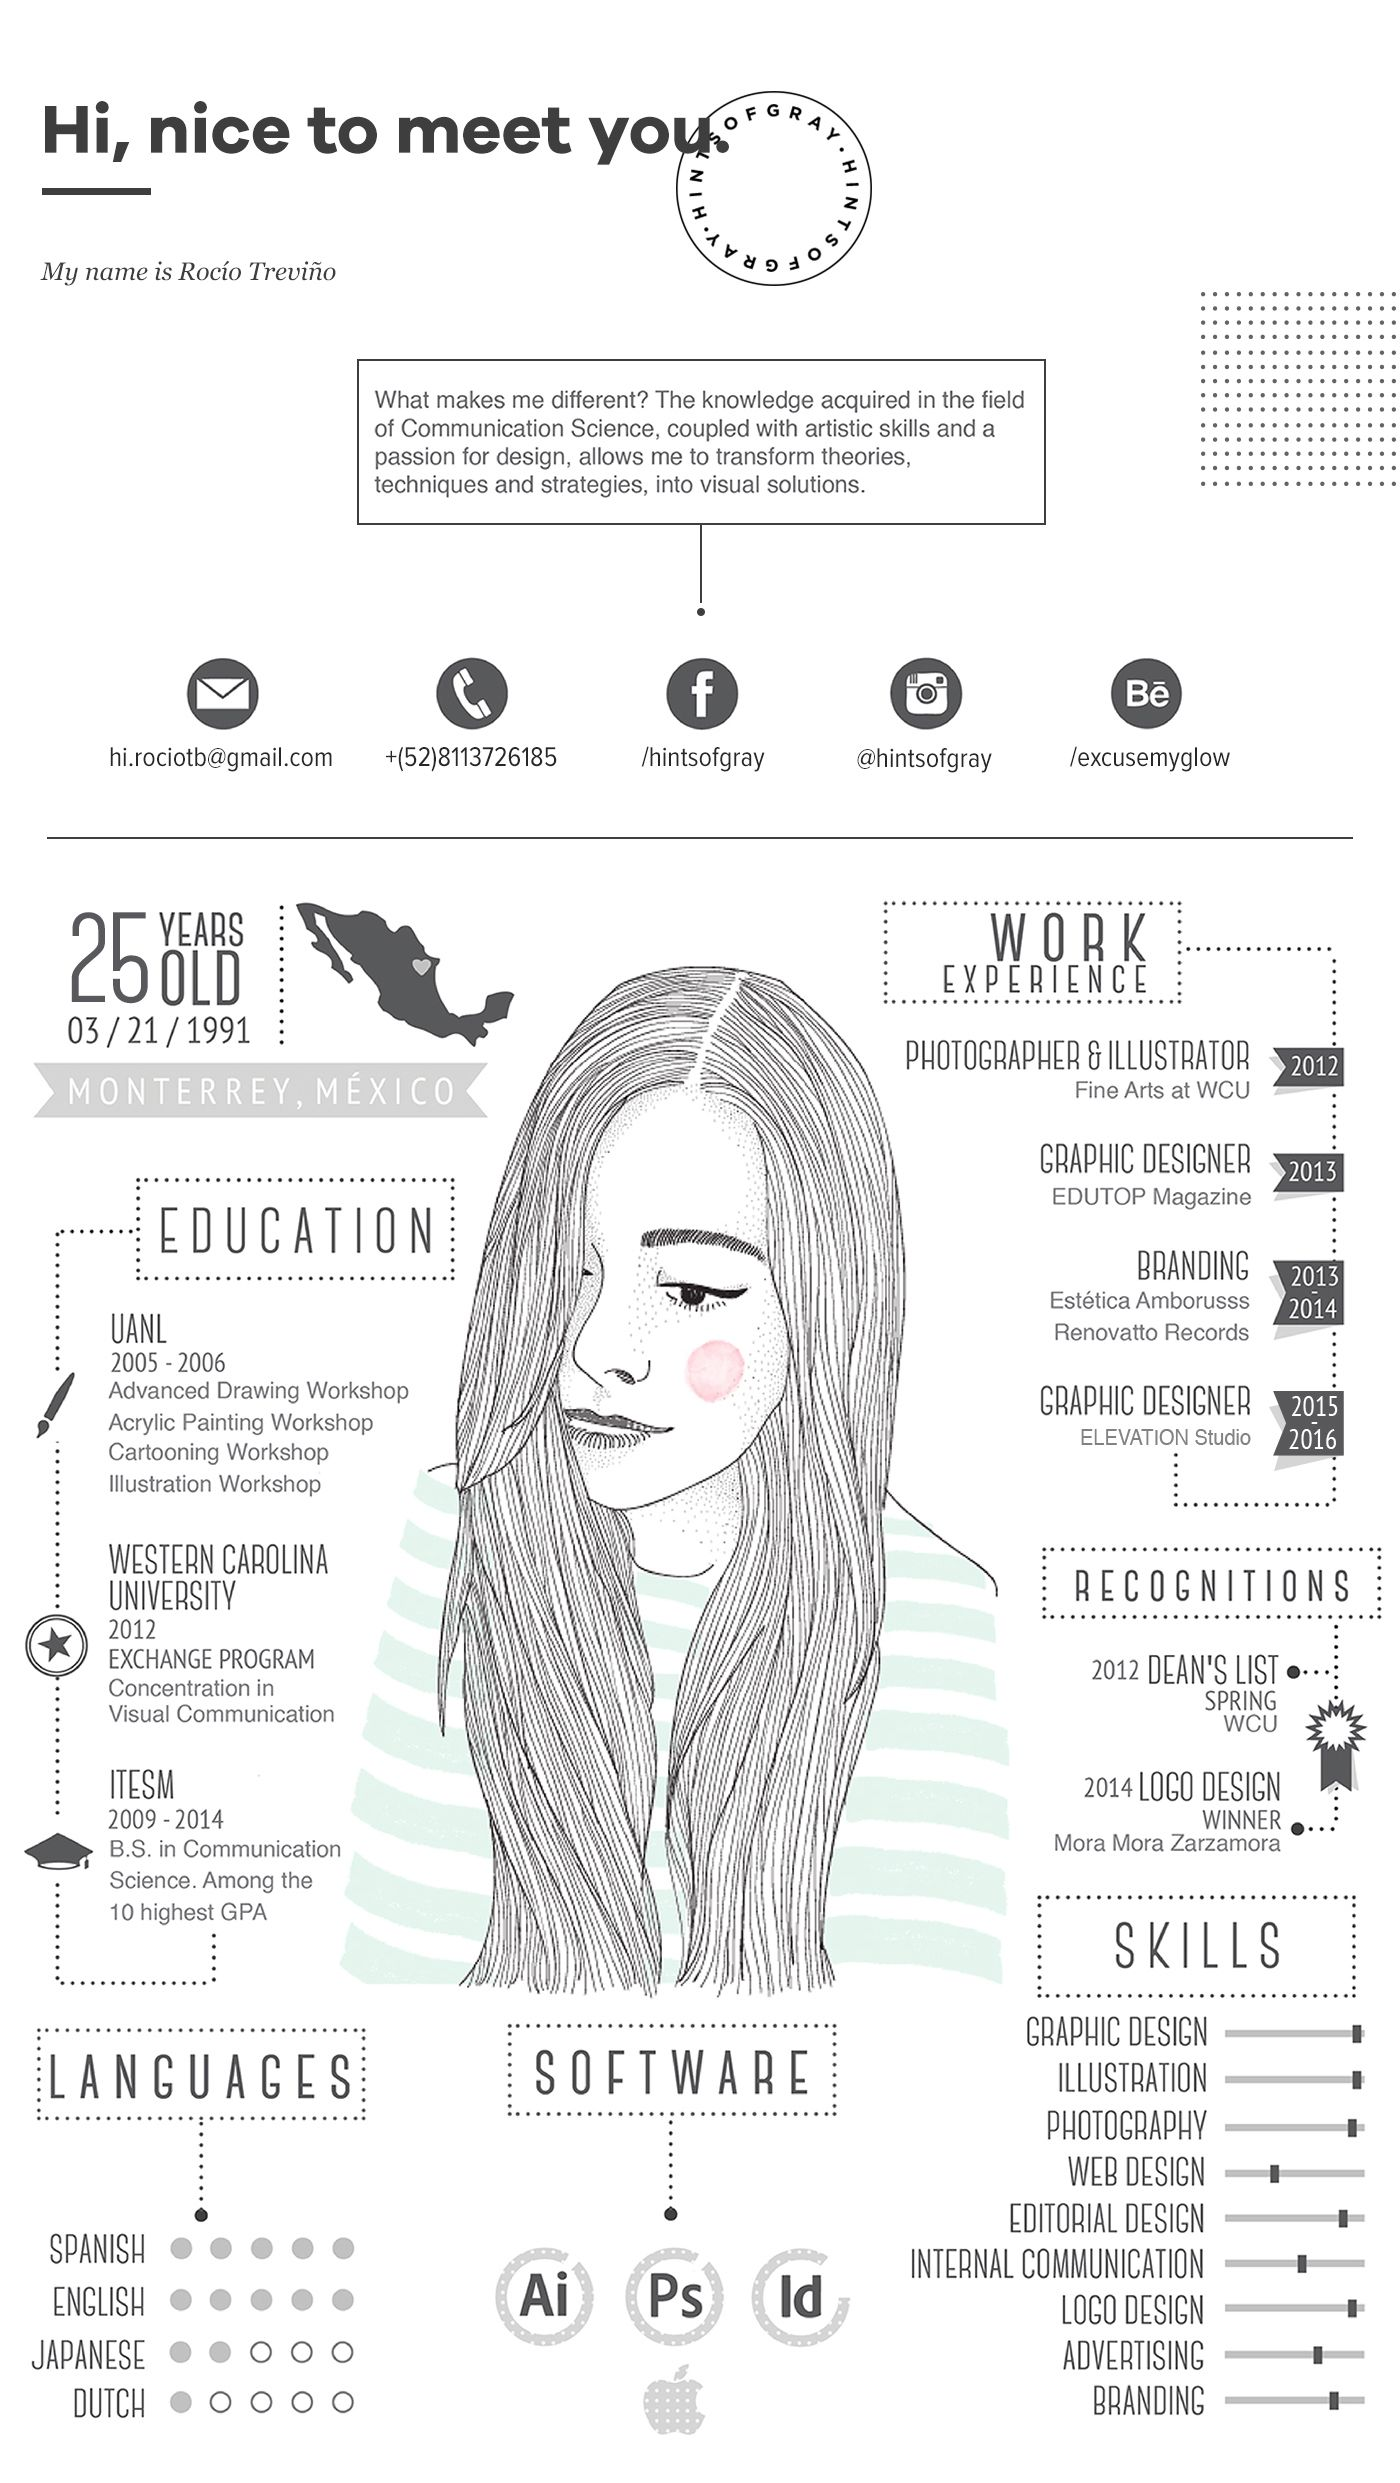 My Cv Resume My Cvresume On Behance  Cv  Pinterest  Behance Cv Ideas And .